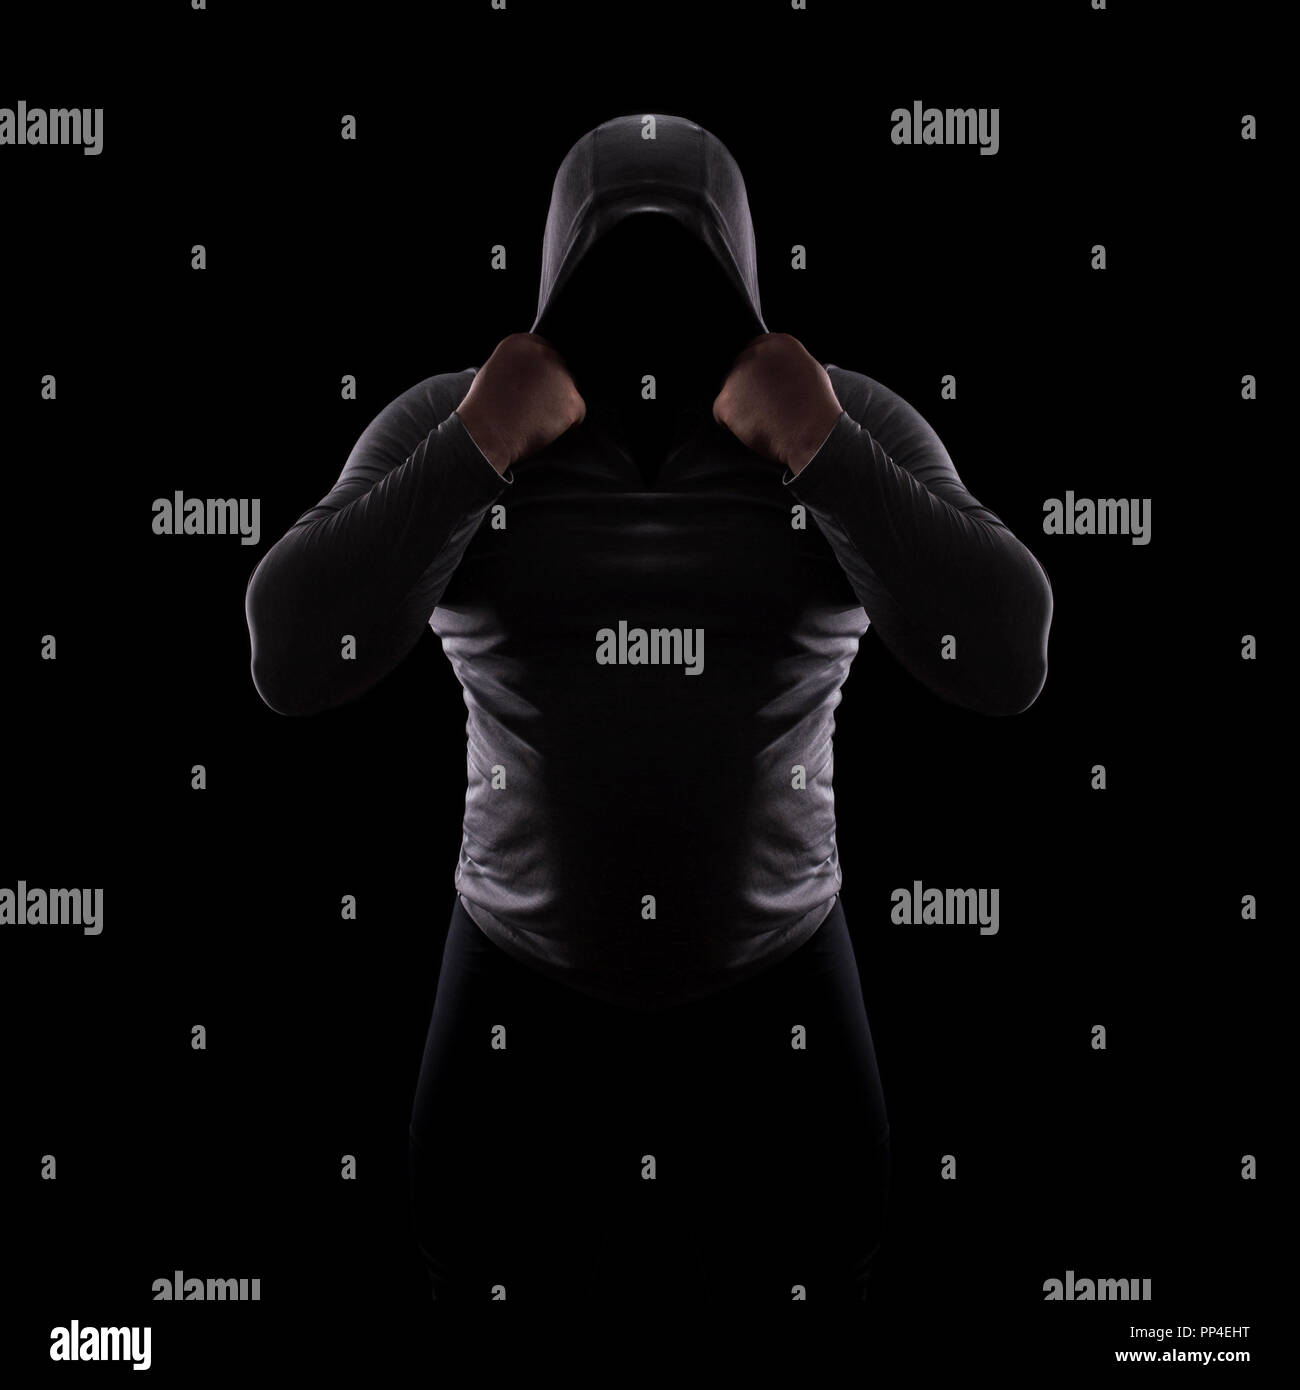 Silhouette of a male fight club in a hood without a face. Stalker silhouette on black background, incognito, anonymous, dangerous man, thug in the dar - Stock Image